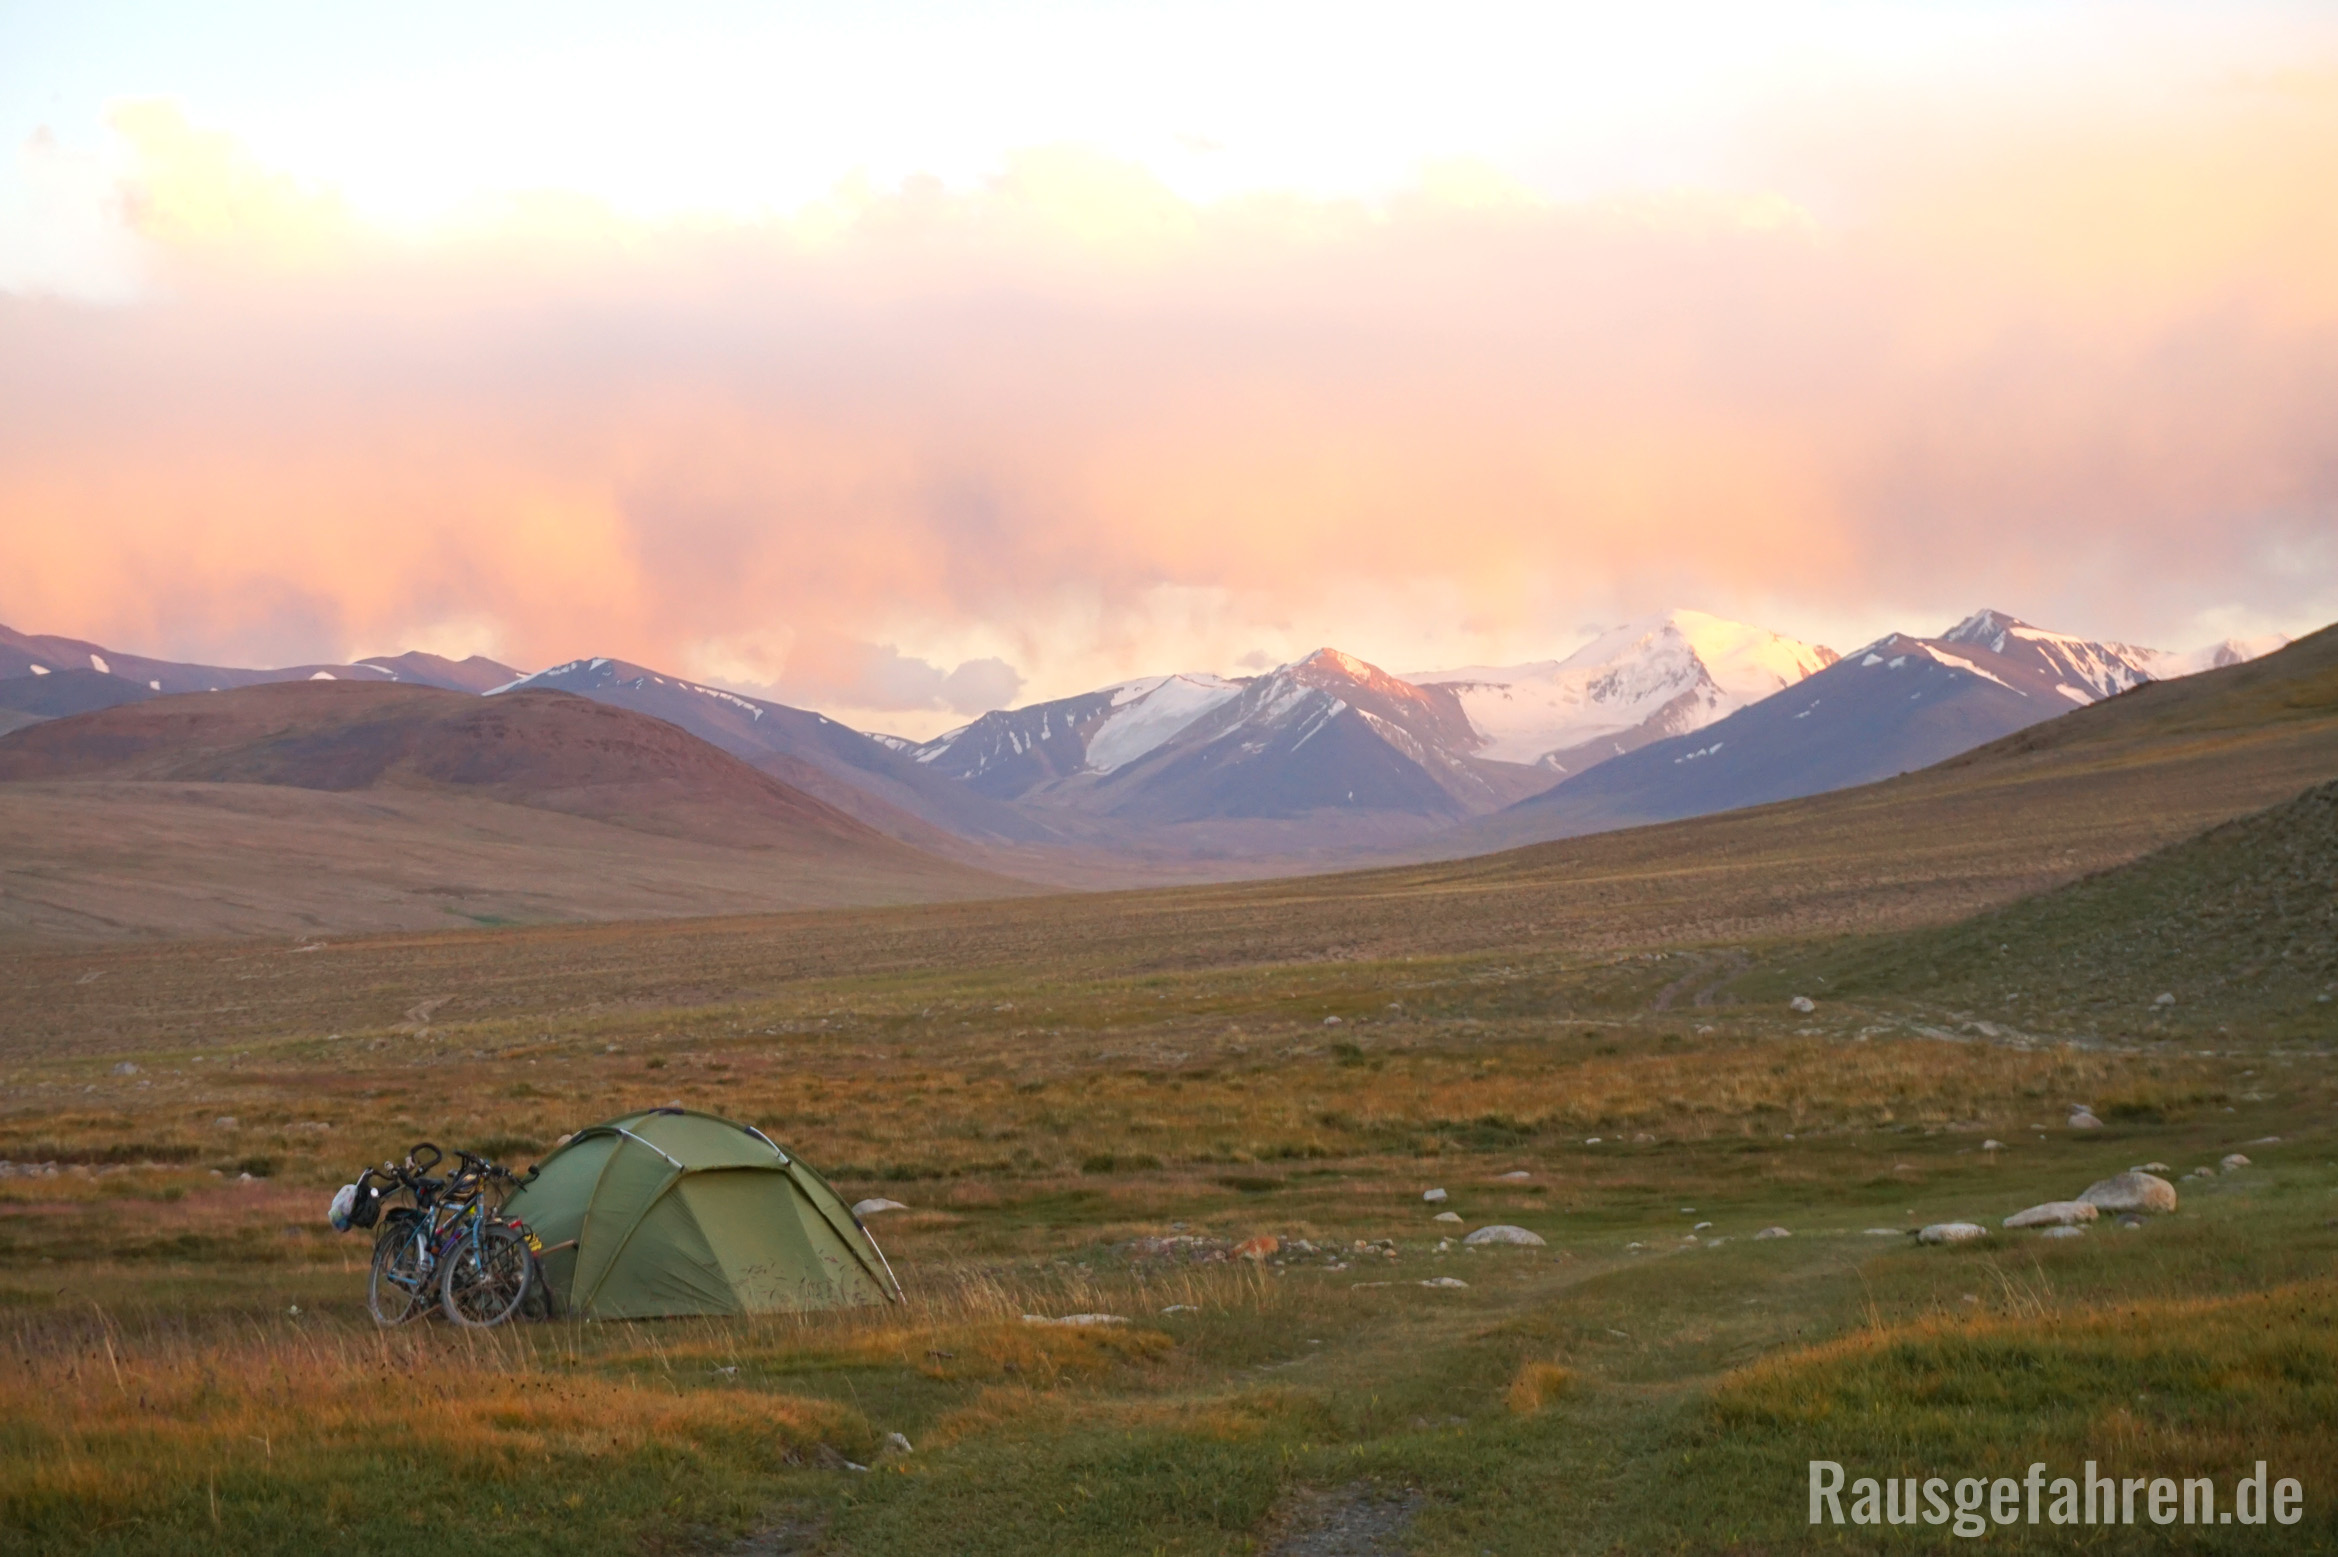 Camping in Tadschikistan